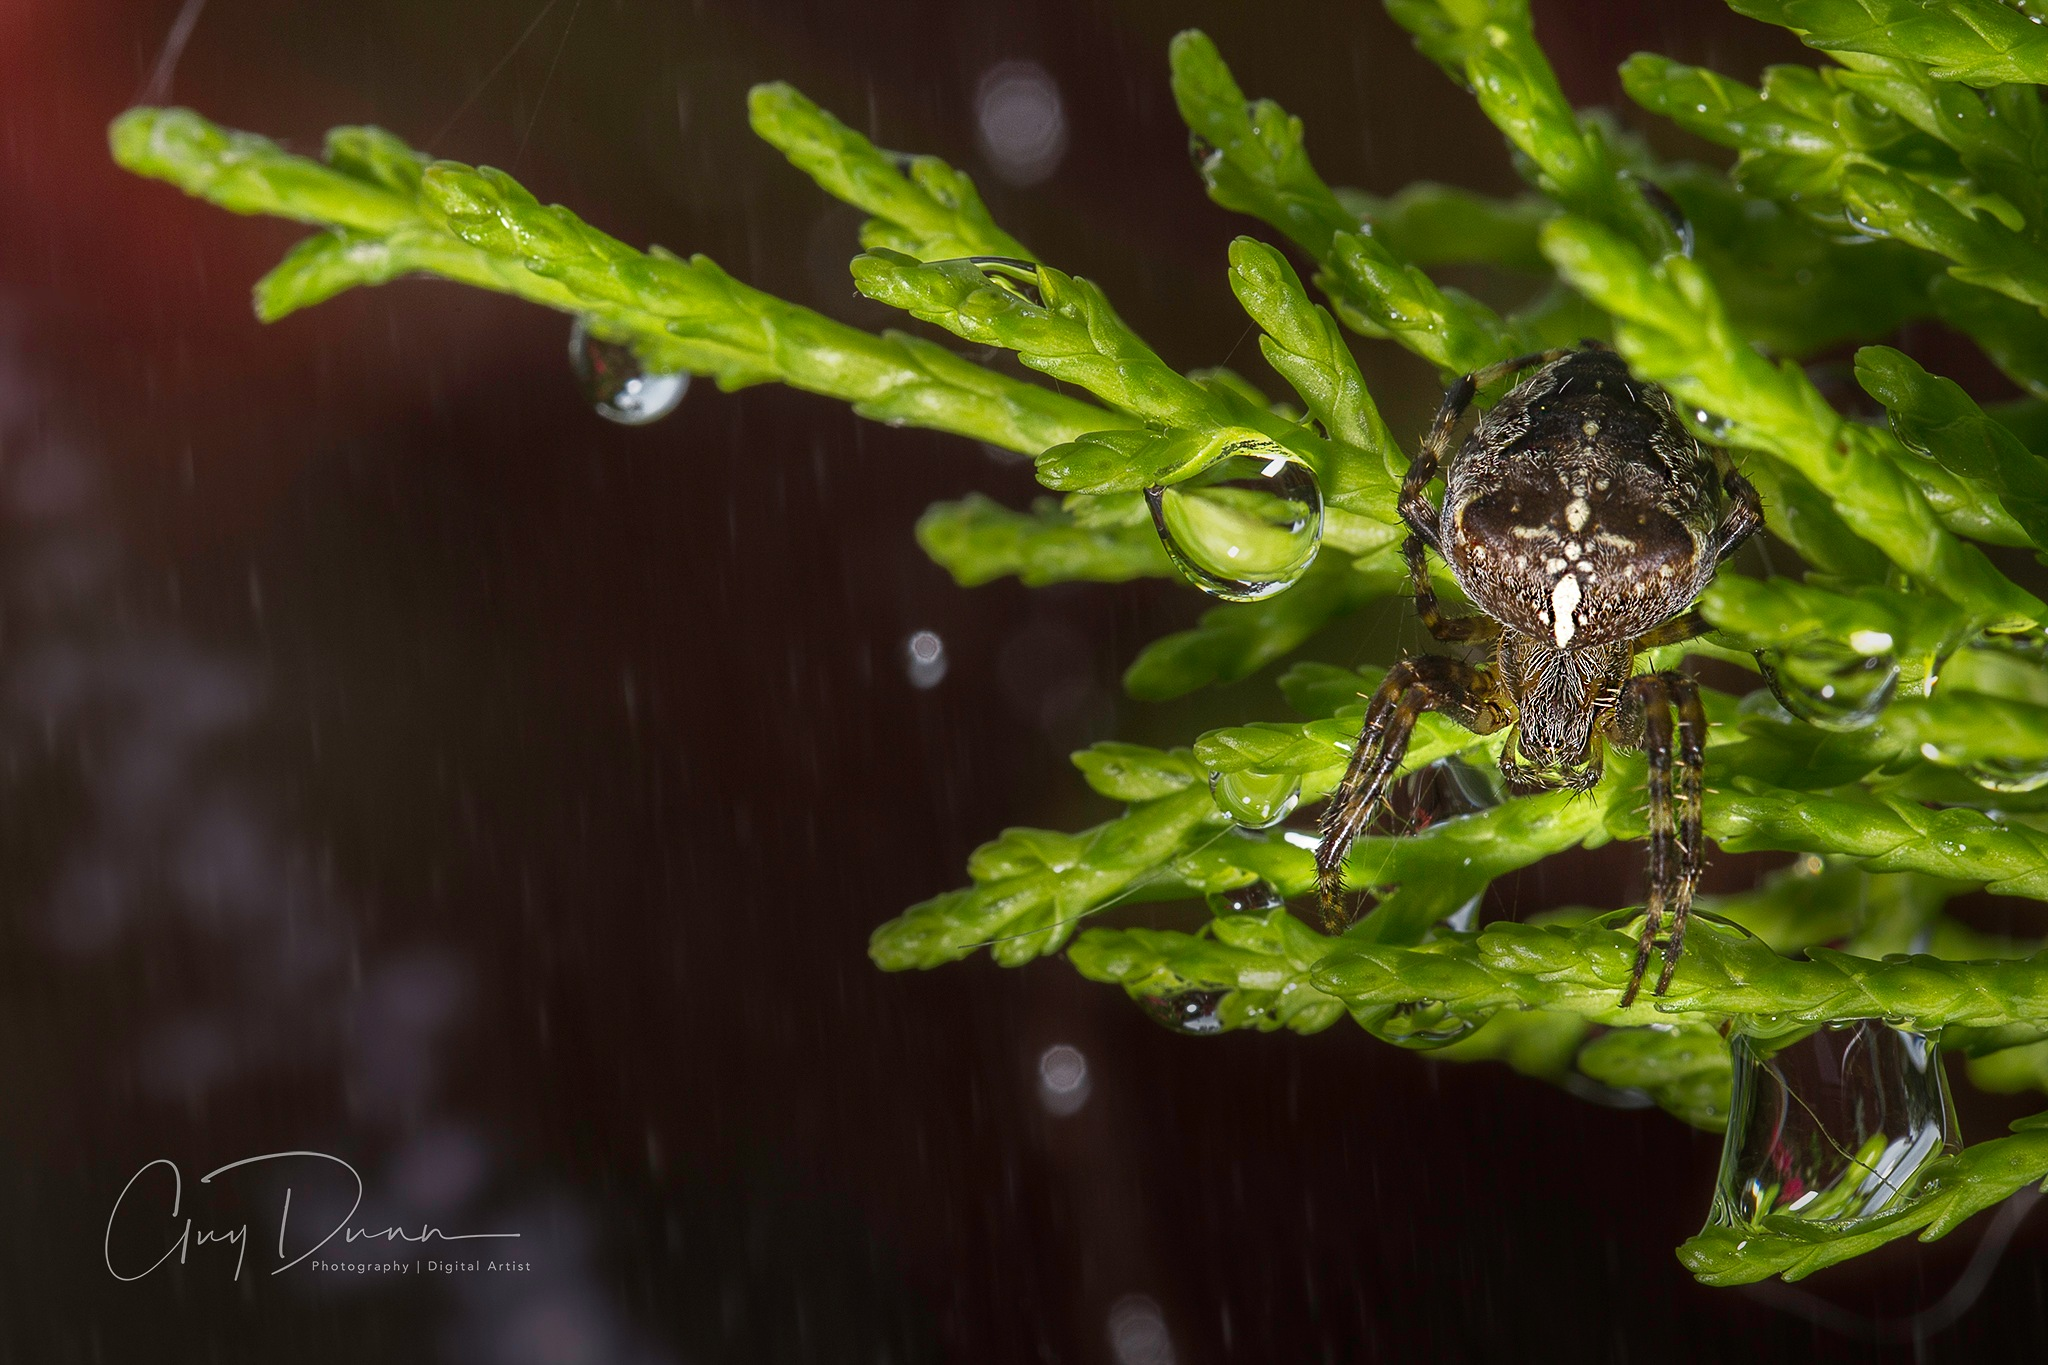 Incy WIncy Spider by Guy Dunn